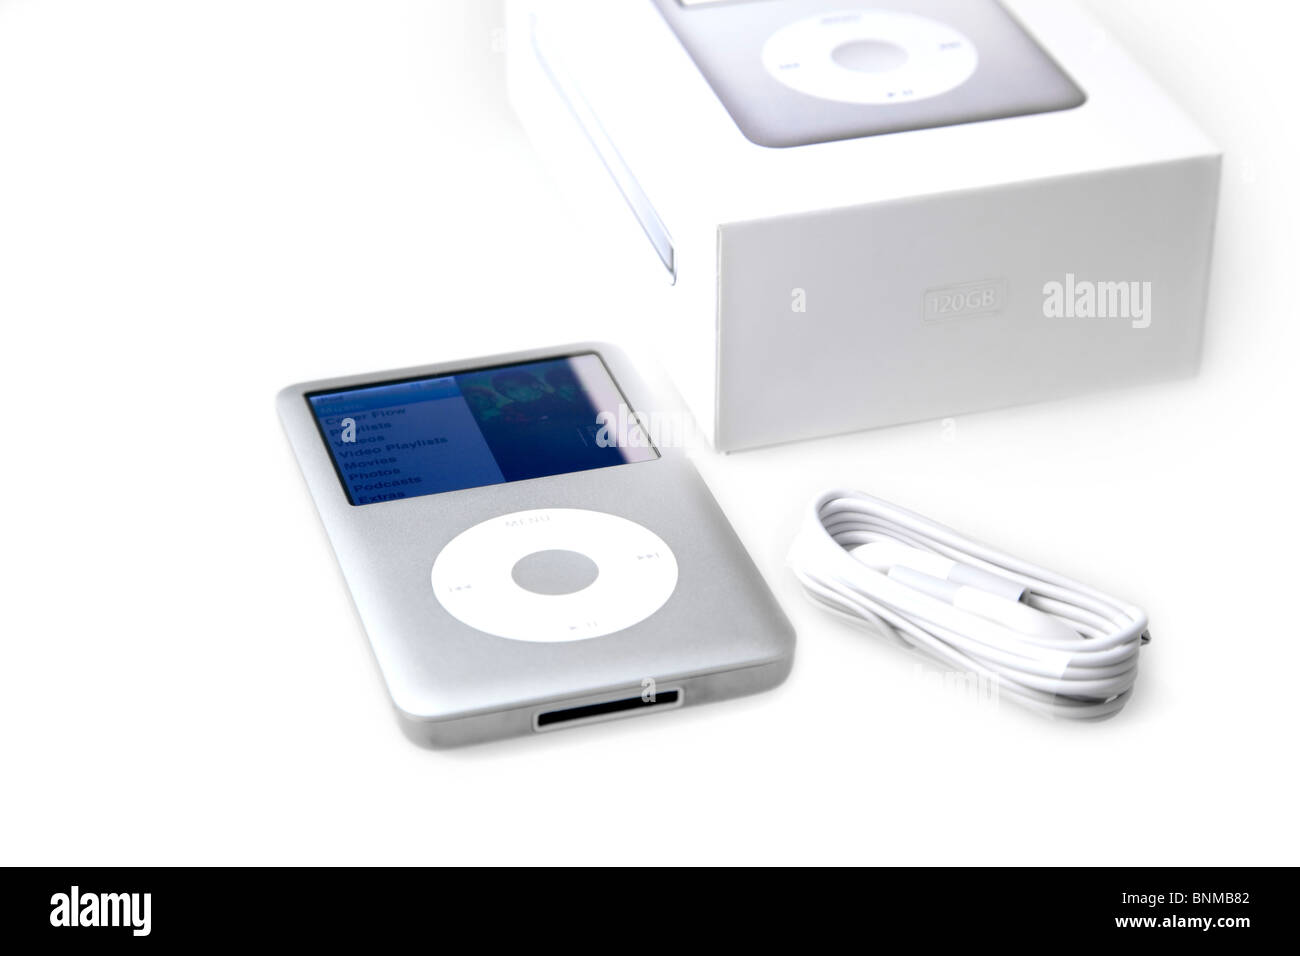 music portable mp3 player apple i pod classic 120gb music player stock photo 30566034 alamy. Black Bedroom Furniture Sets. Home Design Ideas